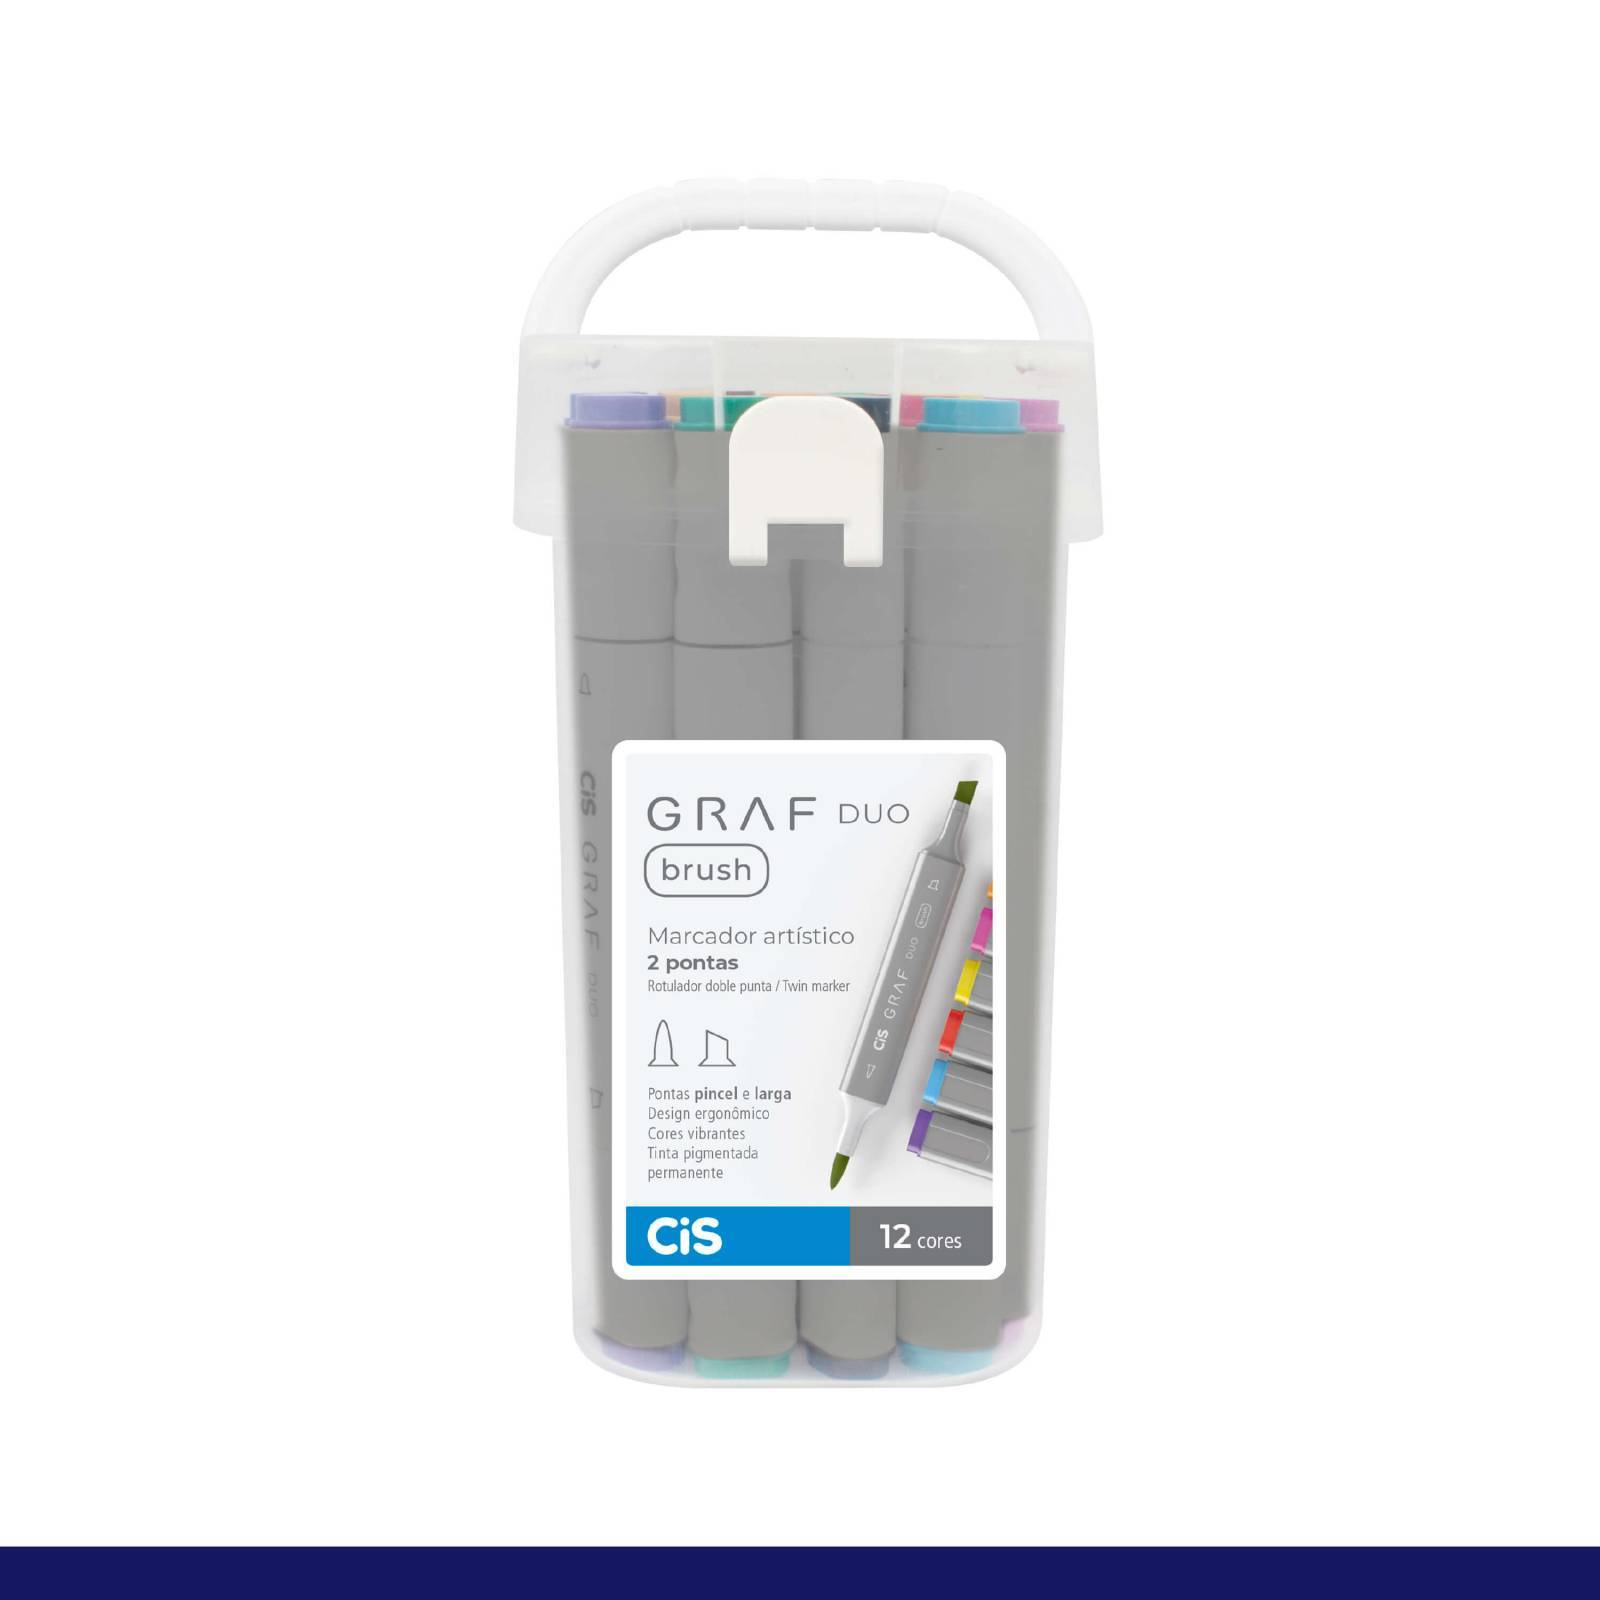 Estojo Cis Graf Duo Brush C/ 12 Cores - Mundo Graffiti